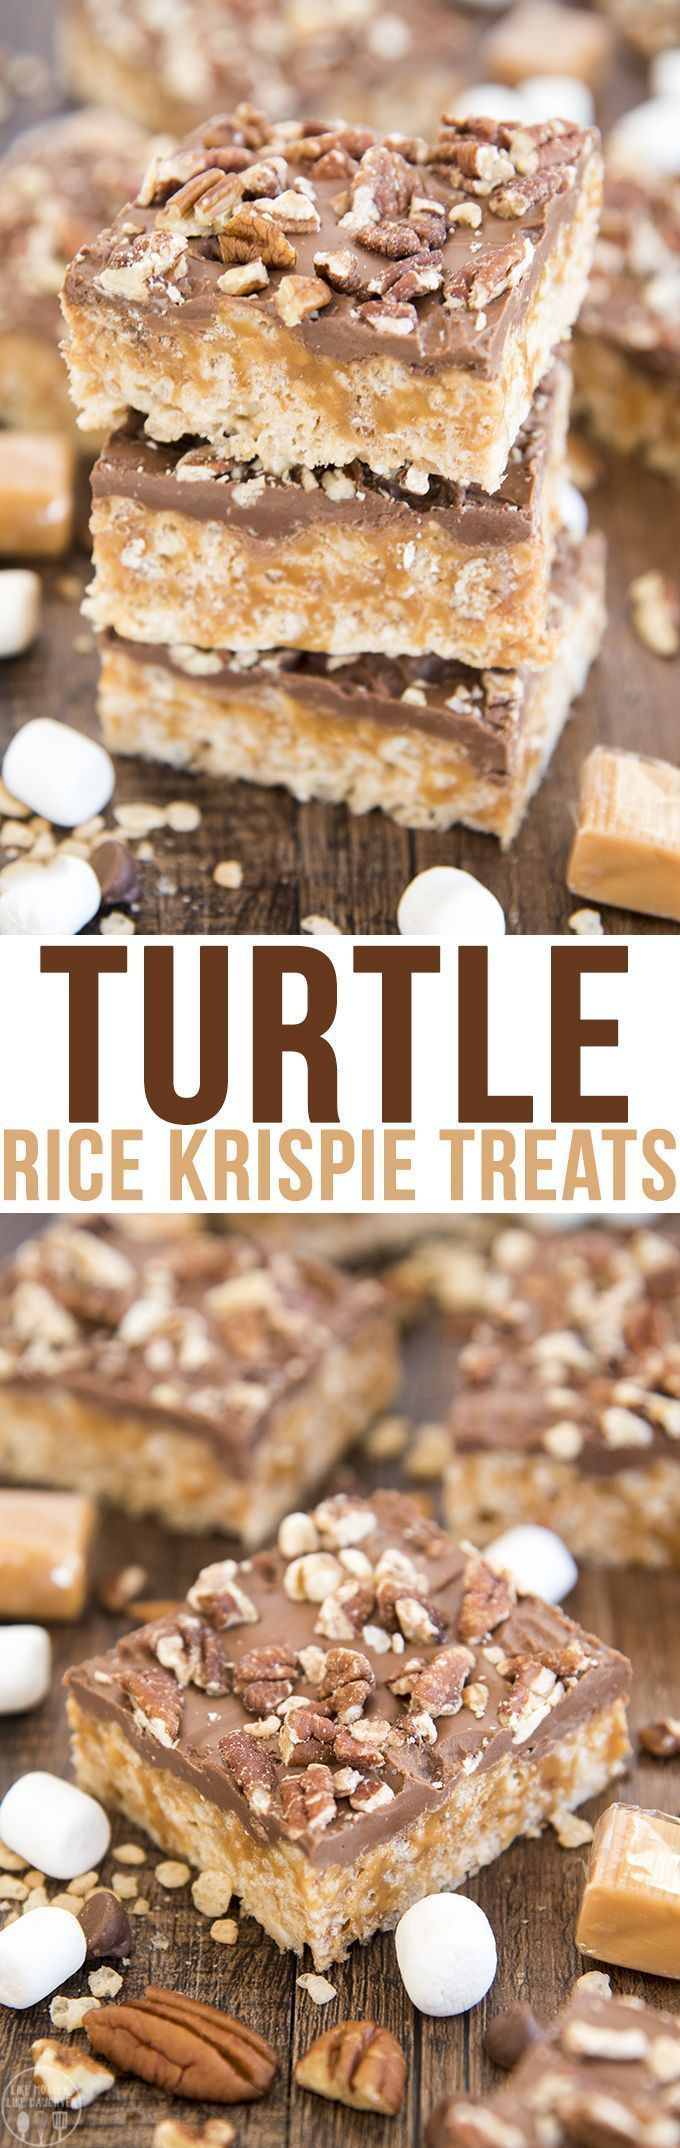 - These turtle rice krispie treats have marshmallow rice krispie treats topped wit…  These turtle rice krispie treats have marshmallow rice krispie treats topped with a melty caramel layer, rich chocolate and crunchy salty pecans! They're an amazing sweet and salty treat.These bars are rich and perfect for sharing!